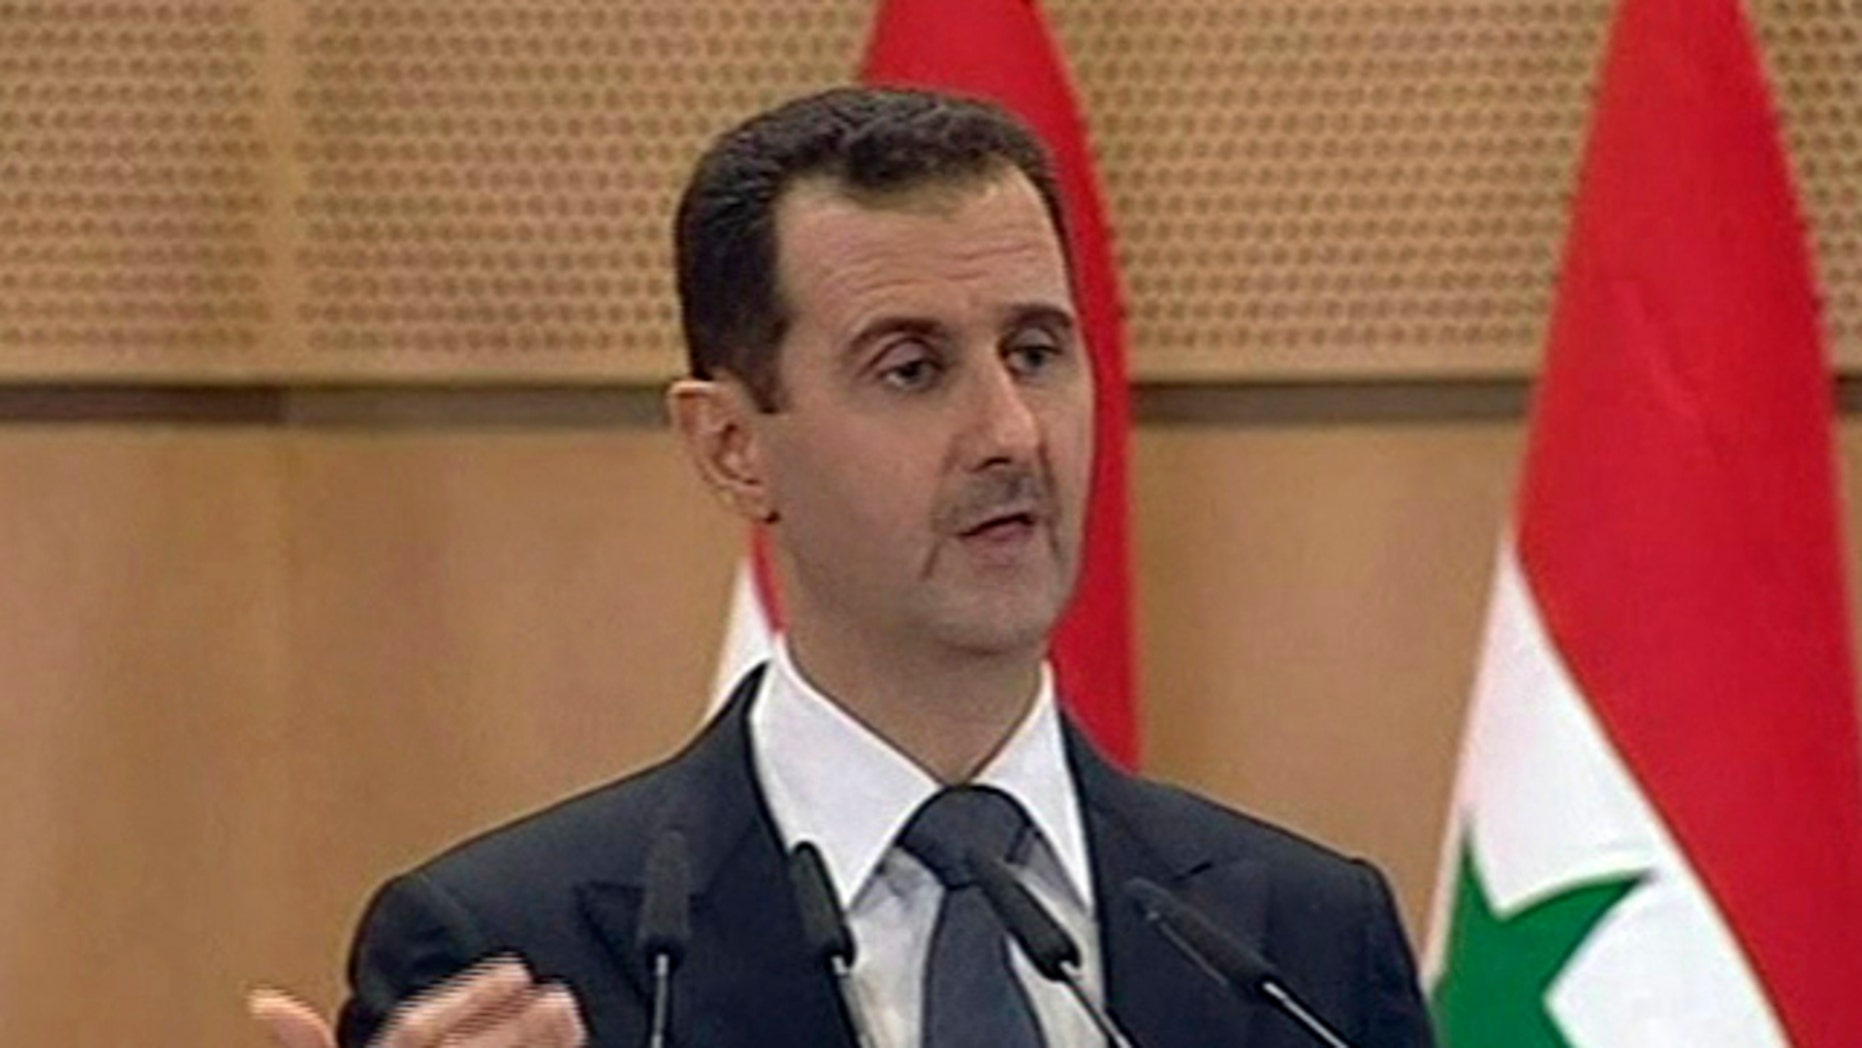 June 20: In this screen grab taken from Syrian TV, Syria's President, Bashar Assad delivers a speech in Damascus.